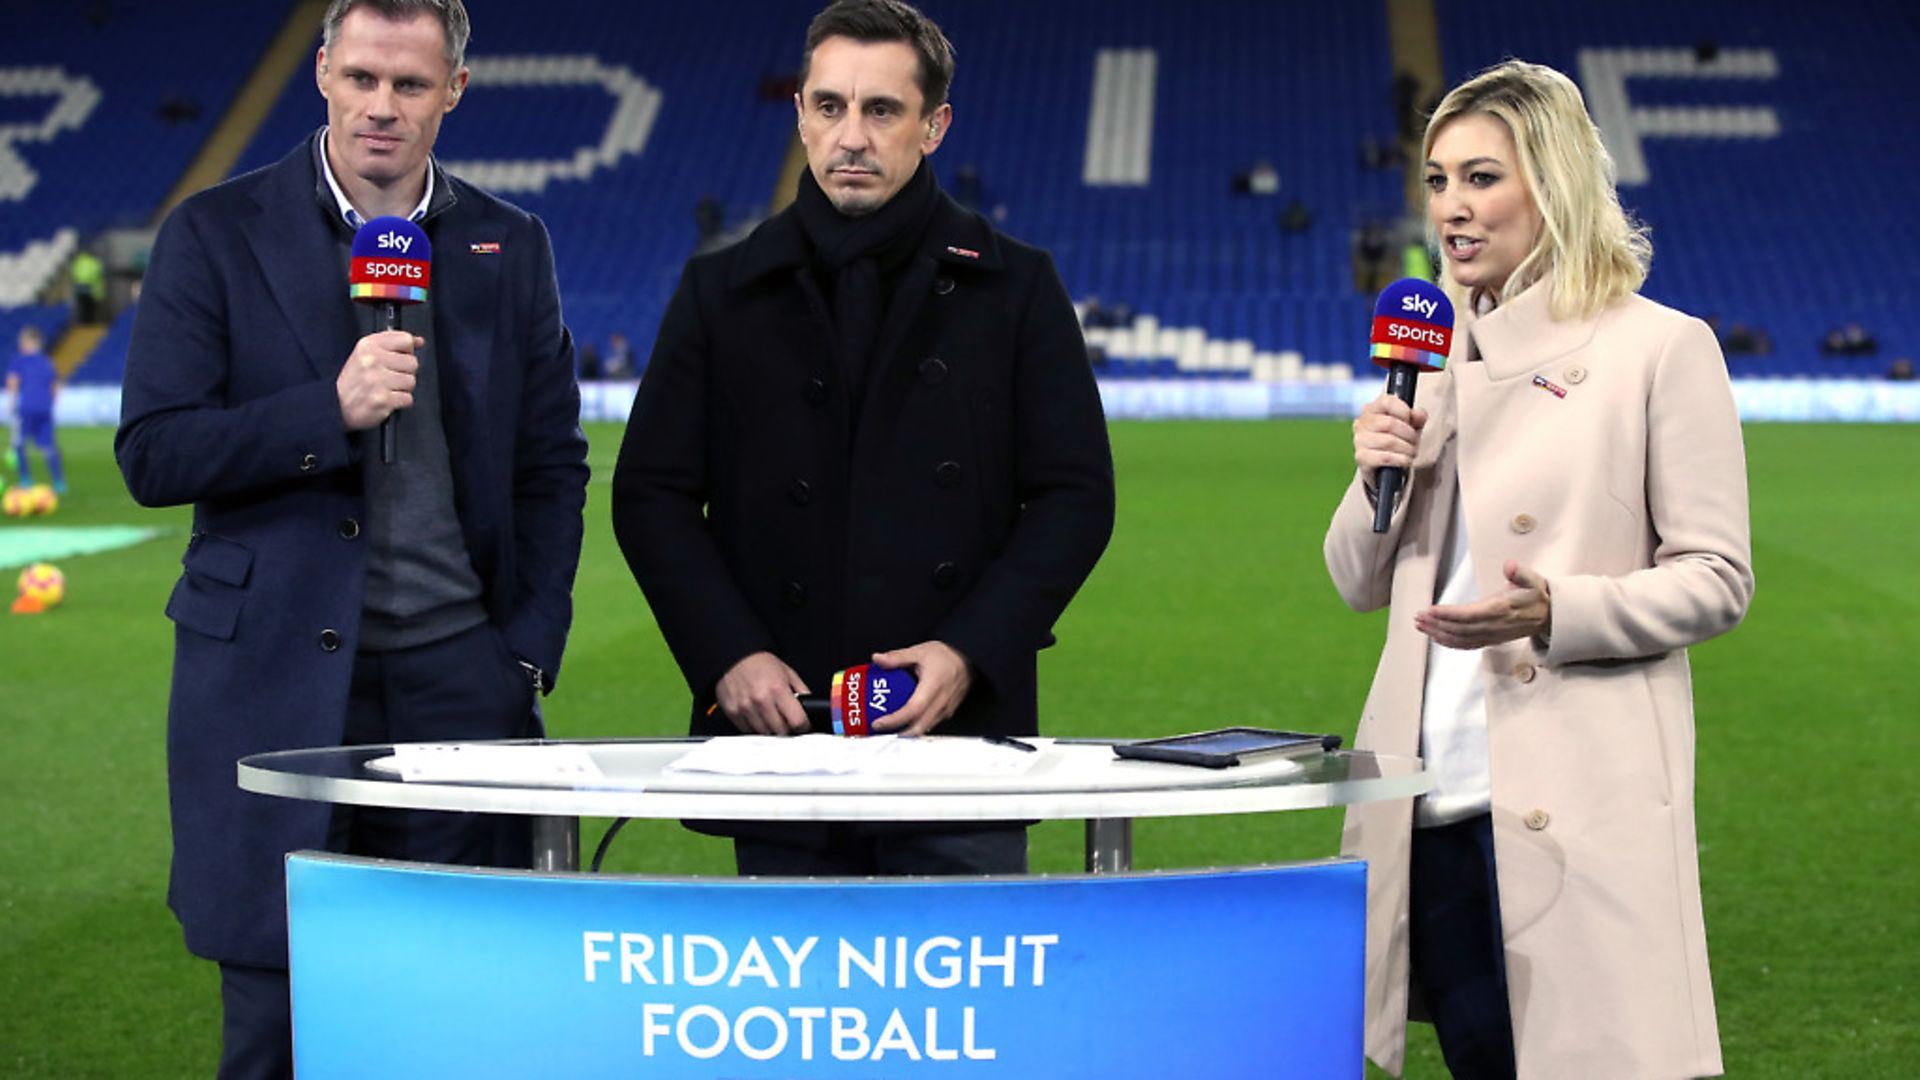 Sky Sports pundits Jamie Carragher (left) and Gary Neville (centre) alongside presenter Kelly Cates. Photograph: Nick Potts/PA. - Credit: PA Archive/PA Images